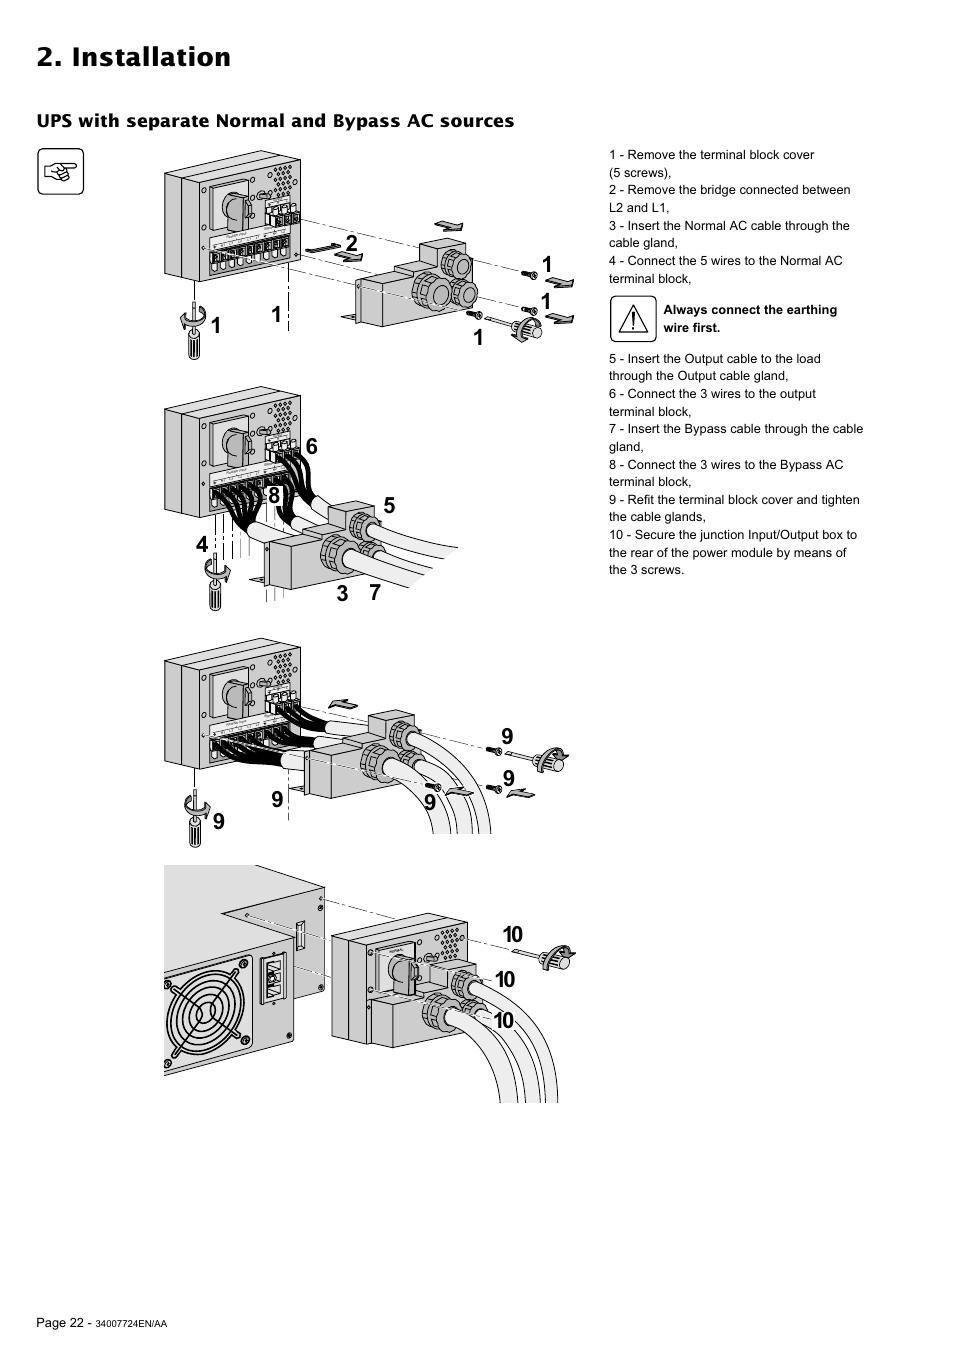 Installation, Ups with separate normal and bypass ac